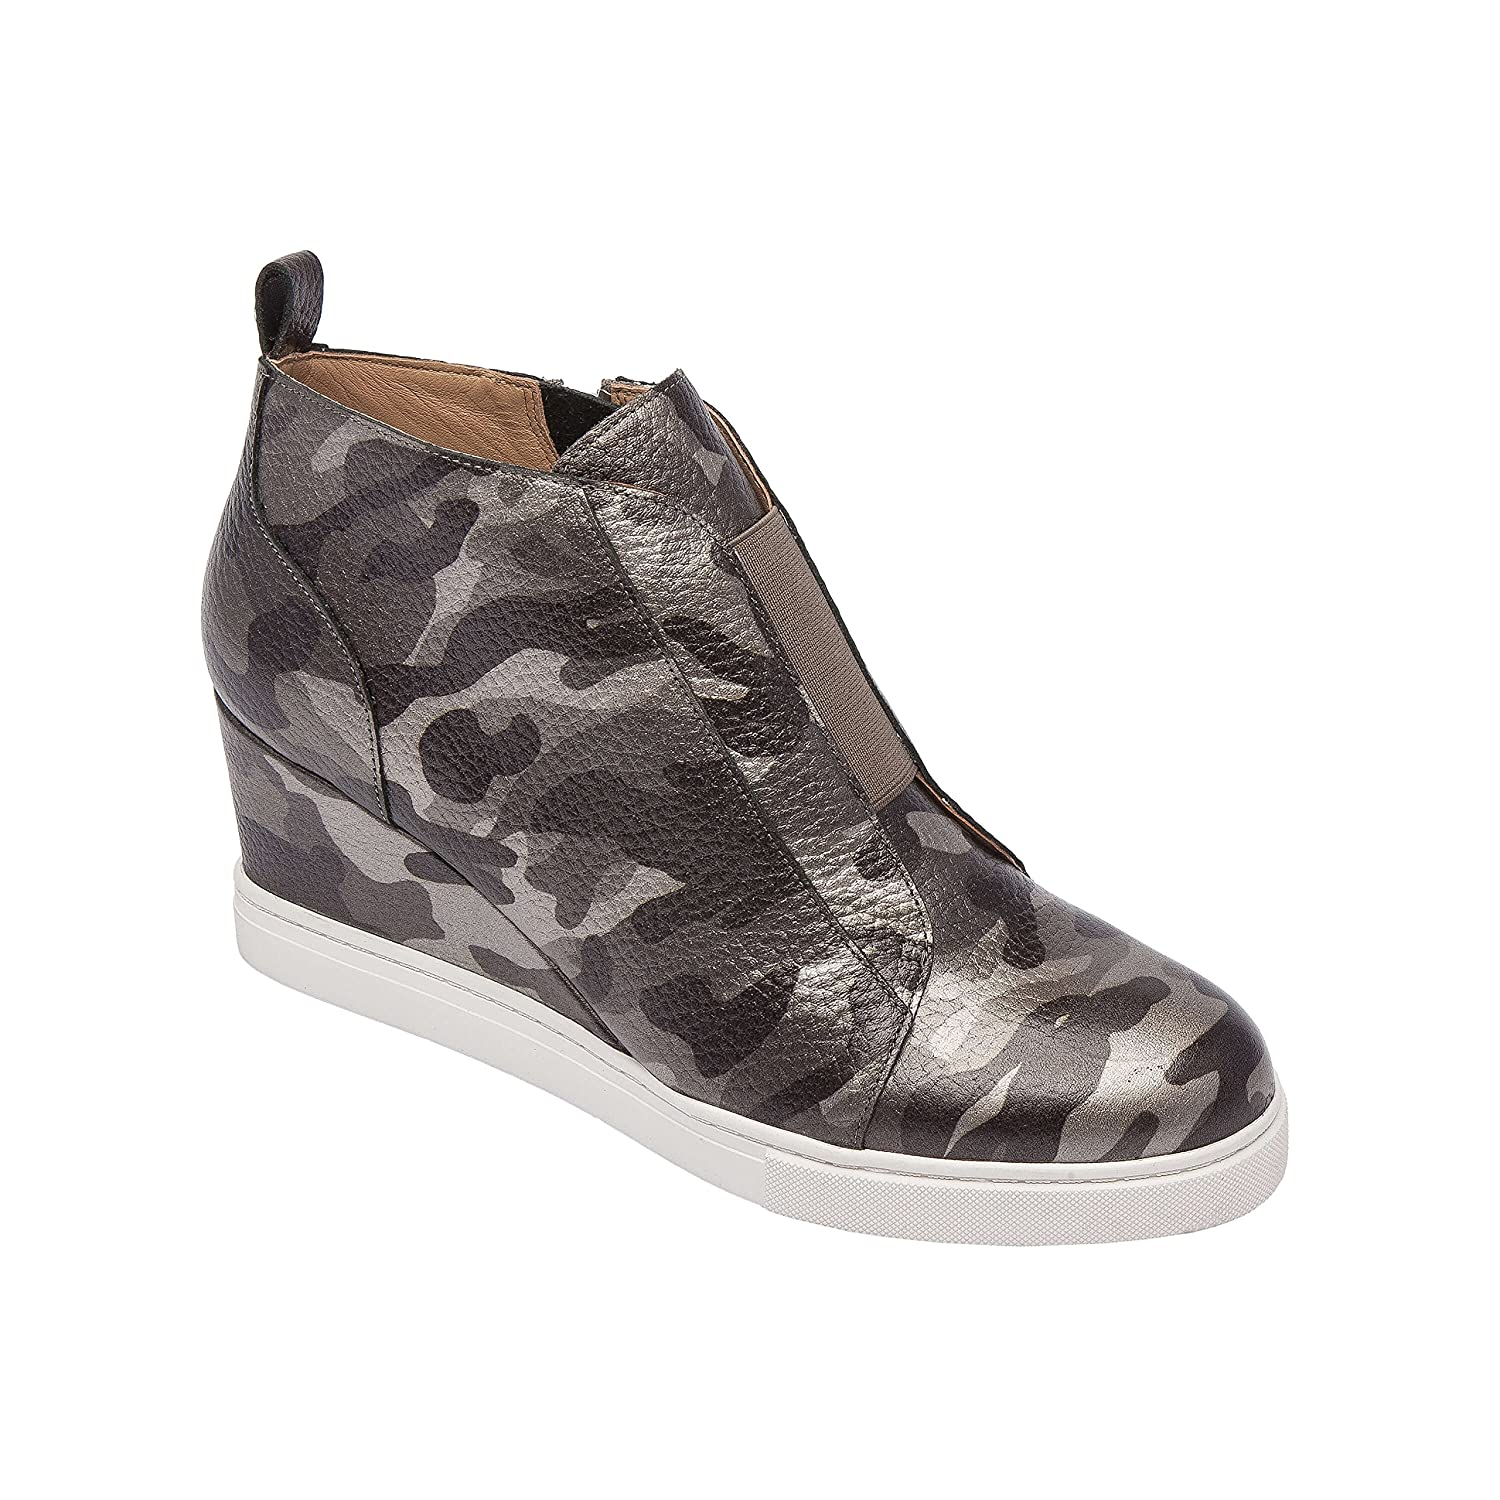 Felicia | Women's Platform Wedge Bootie Sneaker Leather Or Suede B07F6TT1HP 11 M US|Dark Grey Print Leather